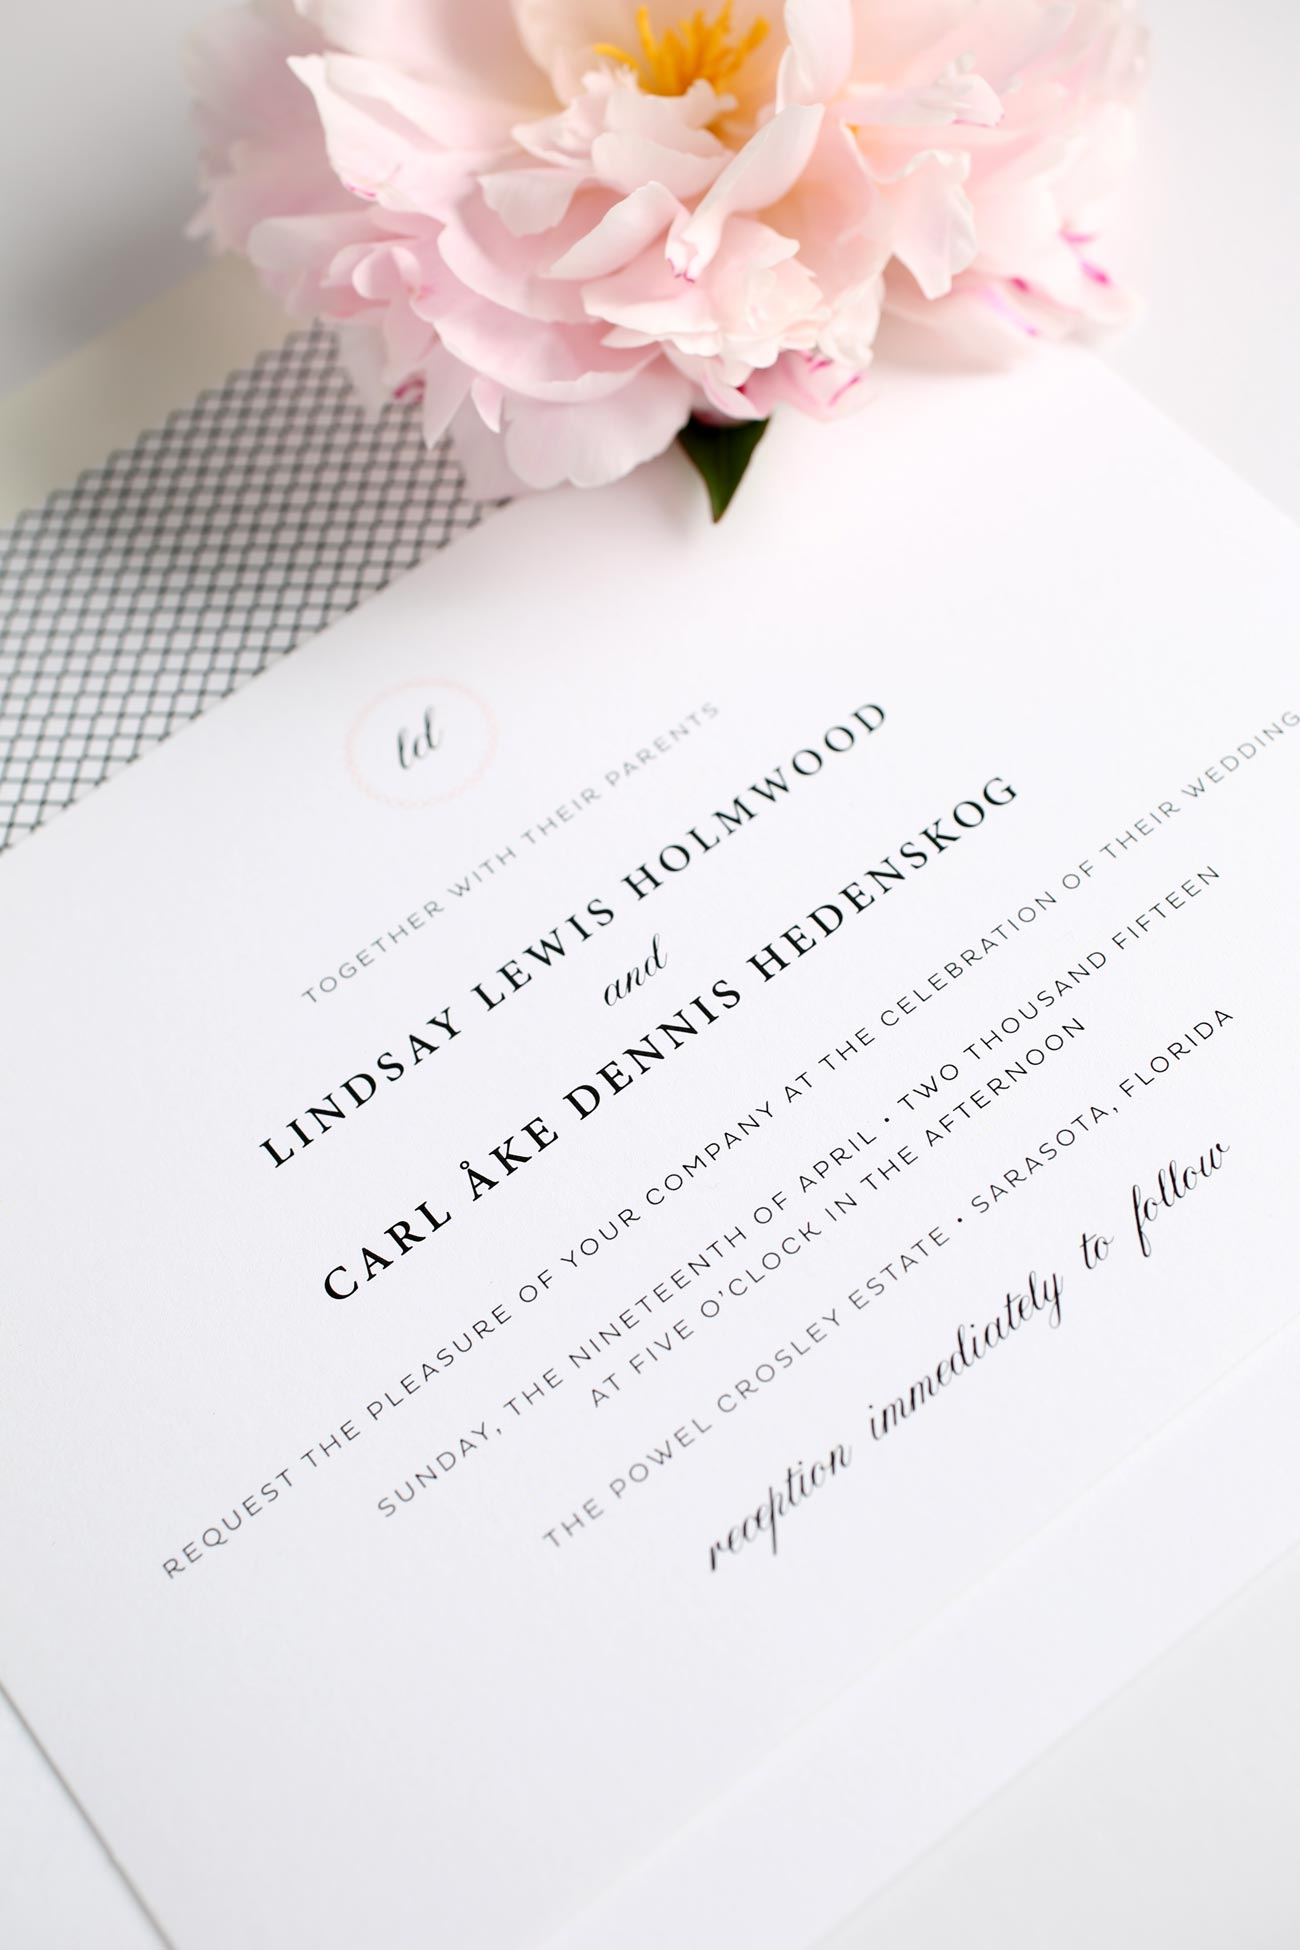 Blush wedding invitations with a monogram